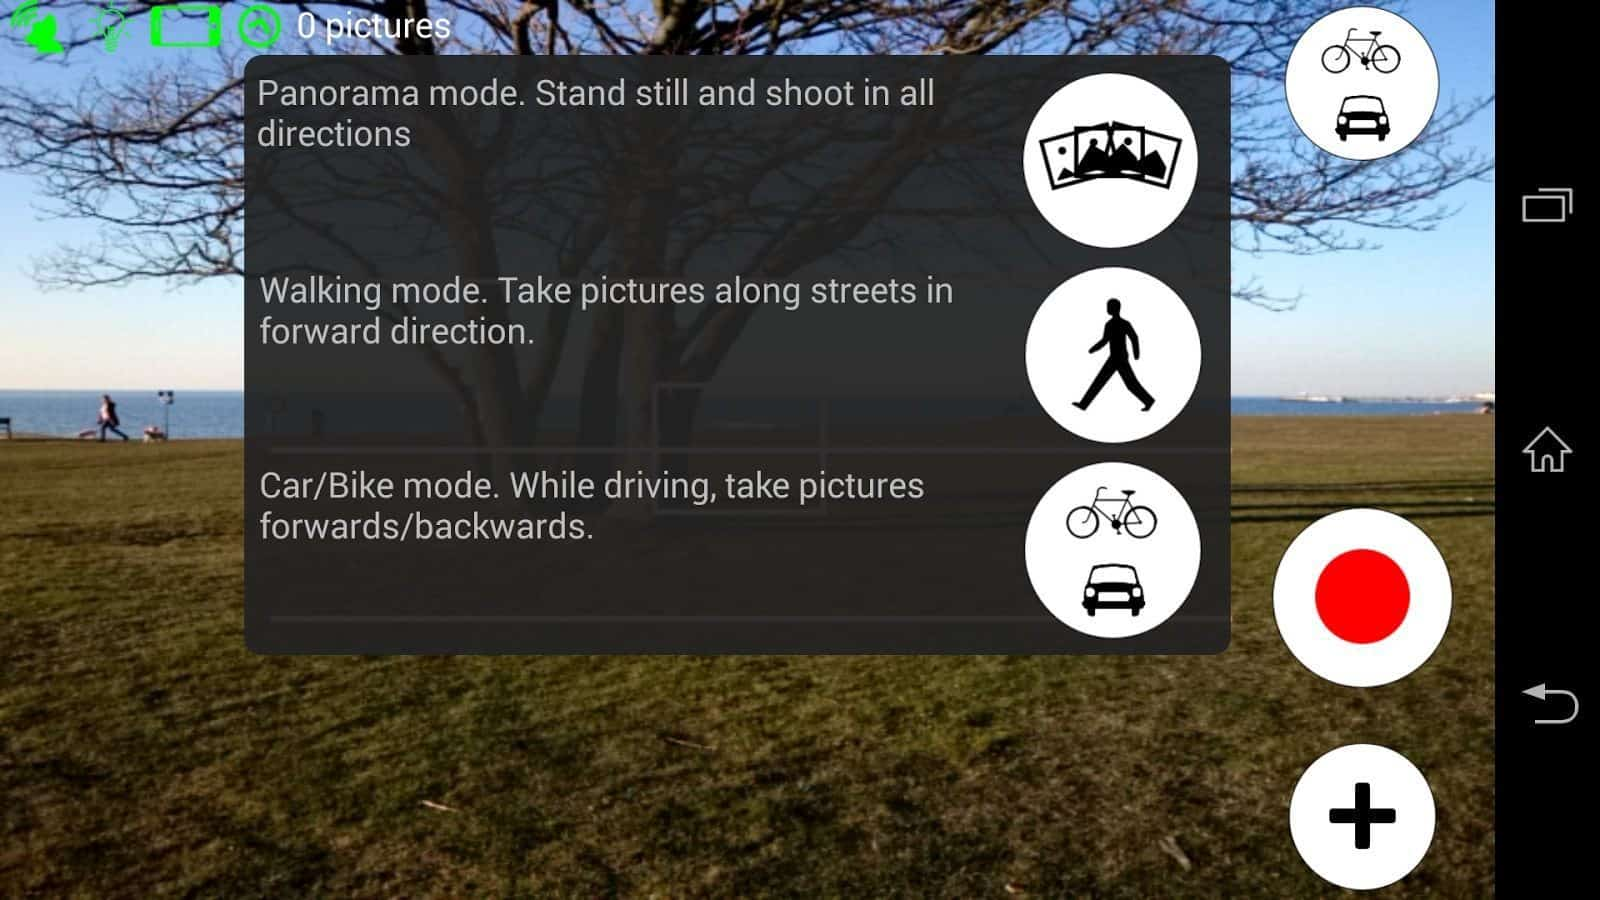 Android interface of the Mapillary app